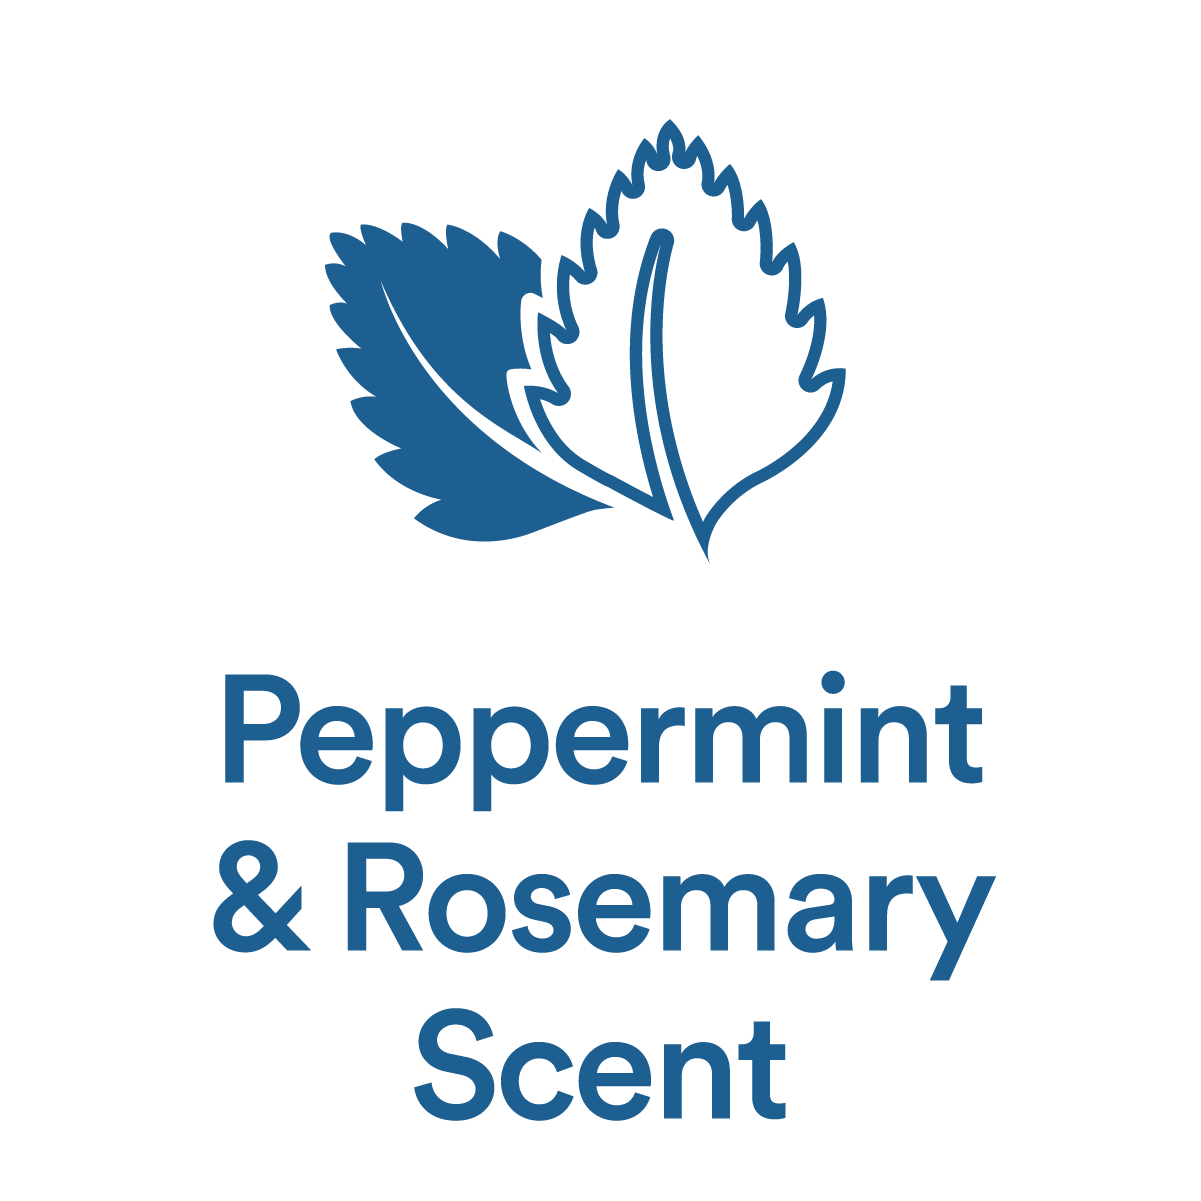 Peppermint and Rosemary Scent